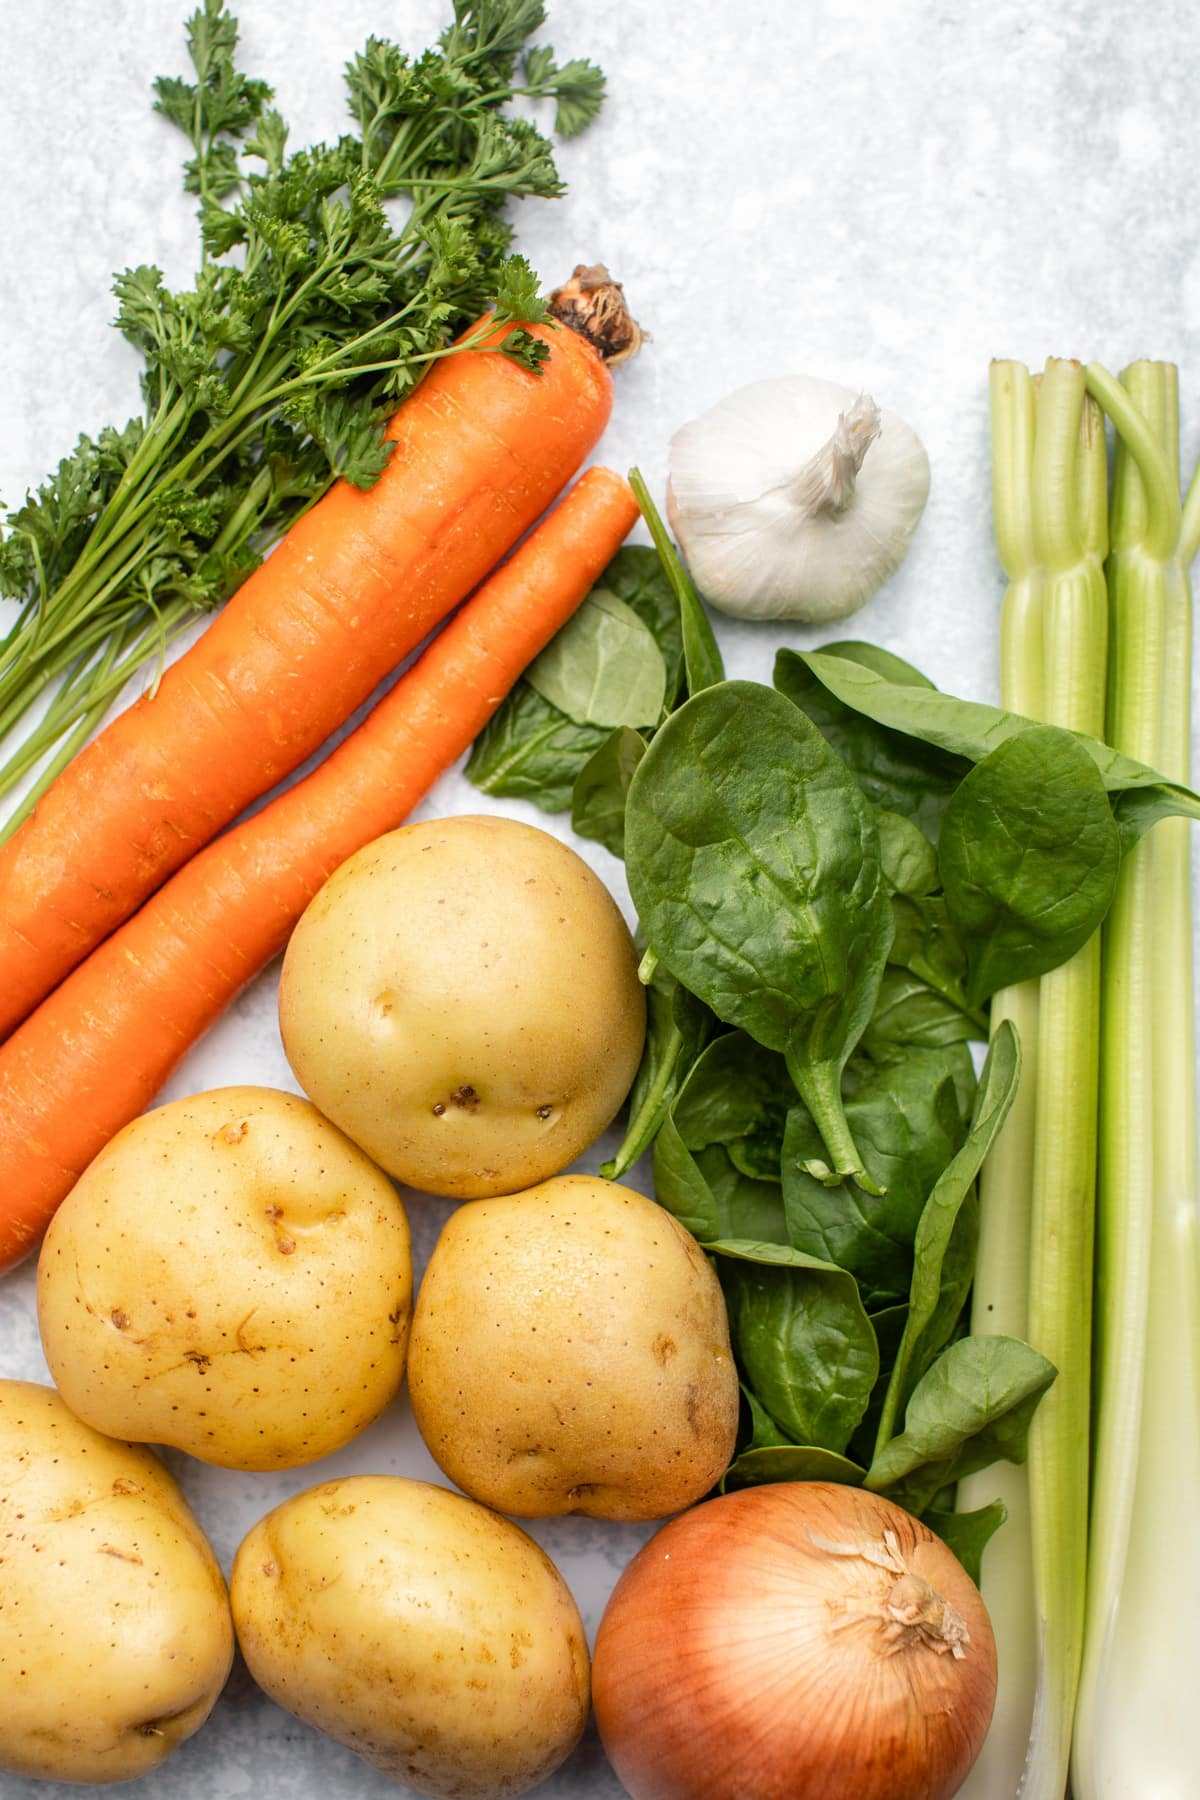 vegetable ingredients for potato spinach soup on marble background